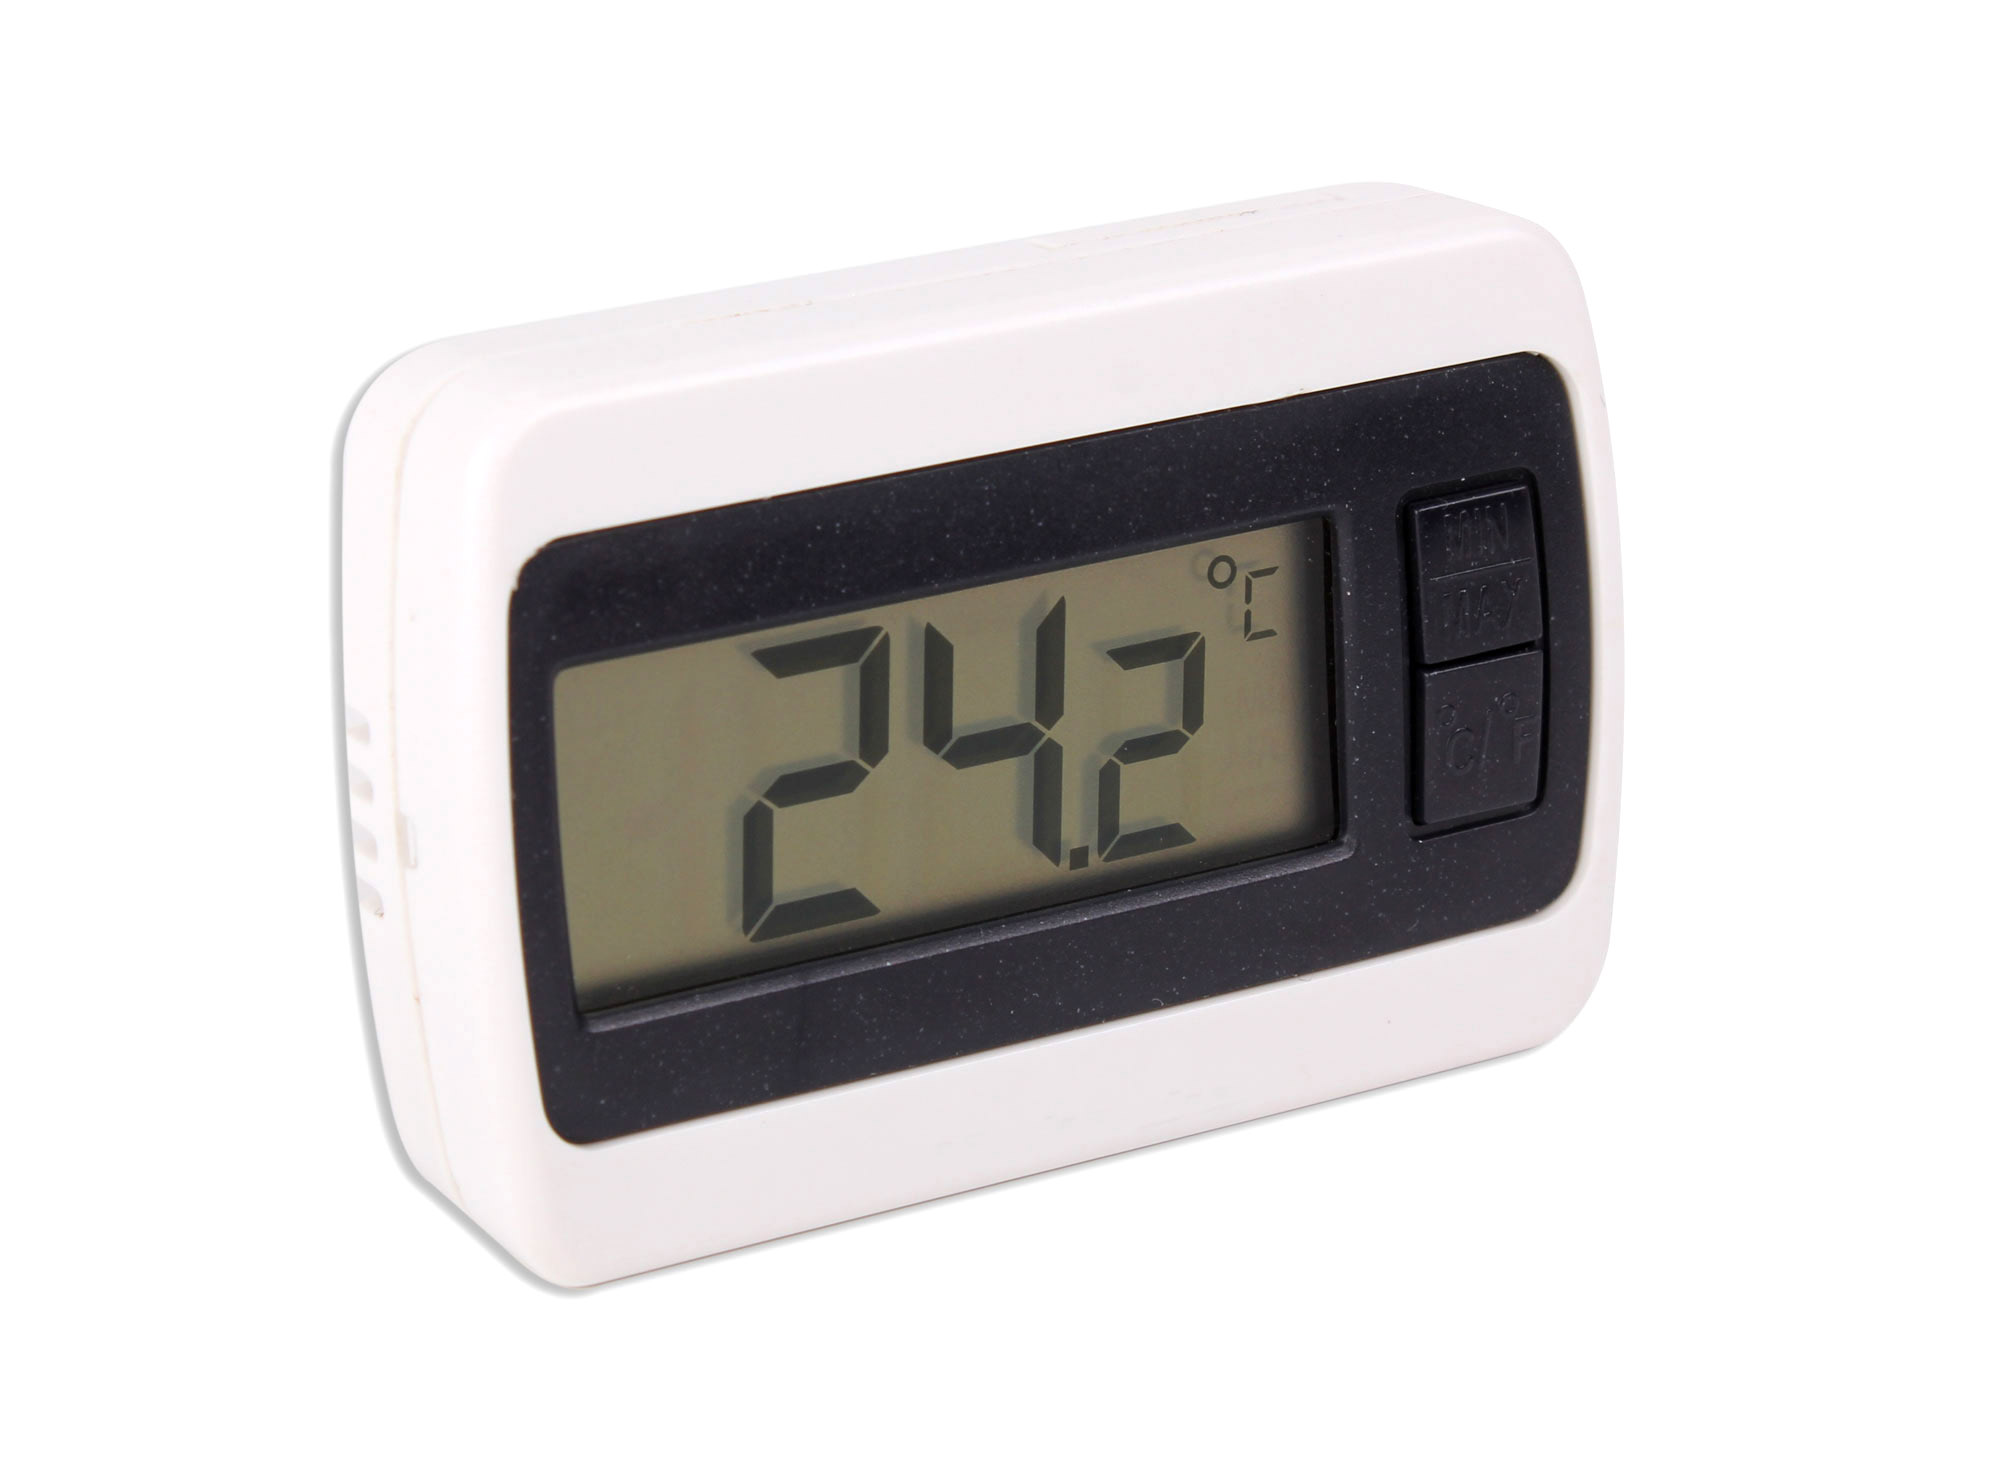 new indoor lcd room temperature thermometer gauge with. Black Bedroom Furniture Sets. Home Design Ideas